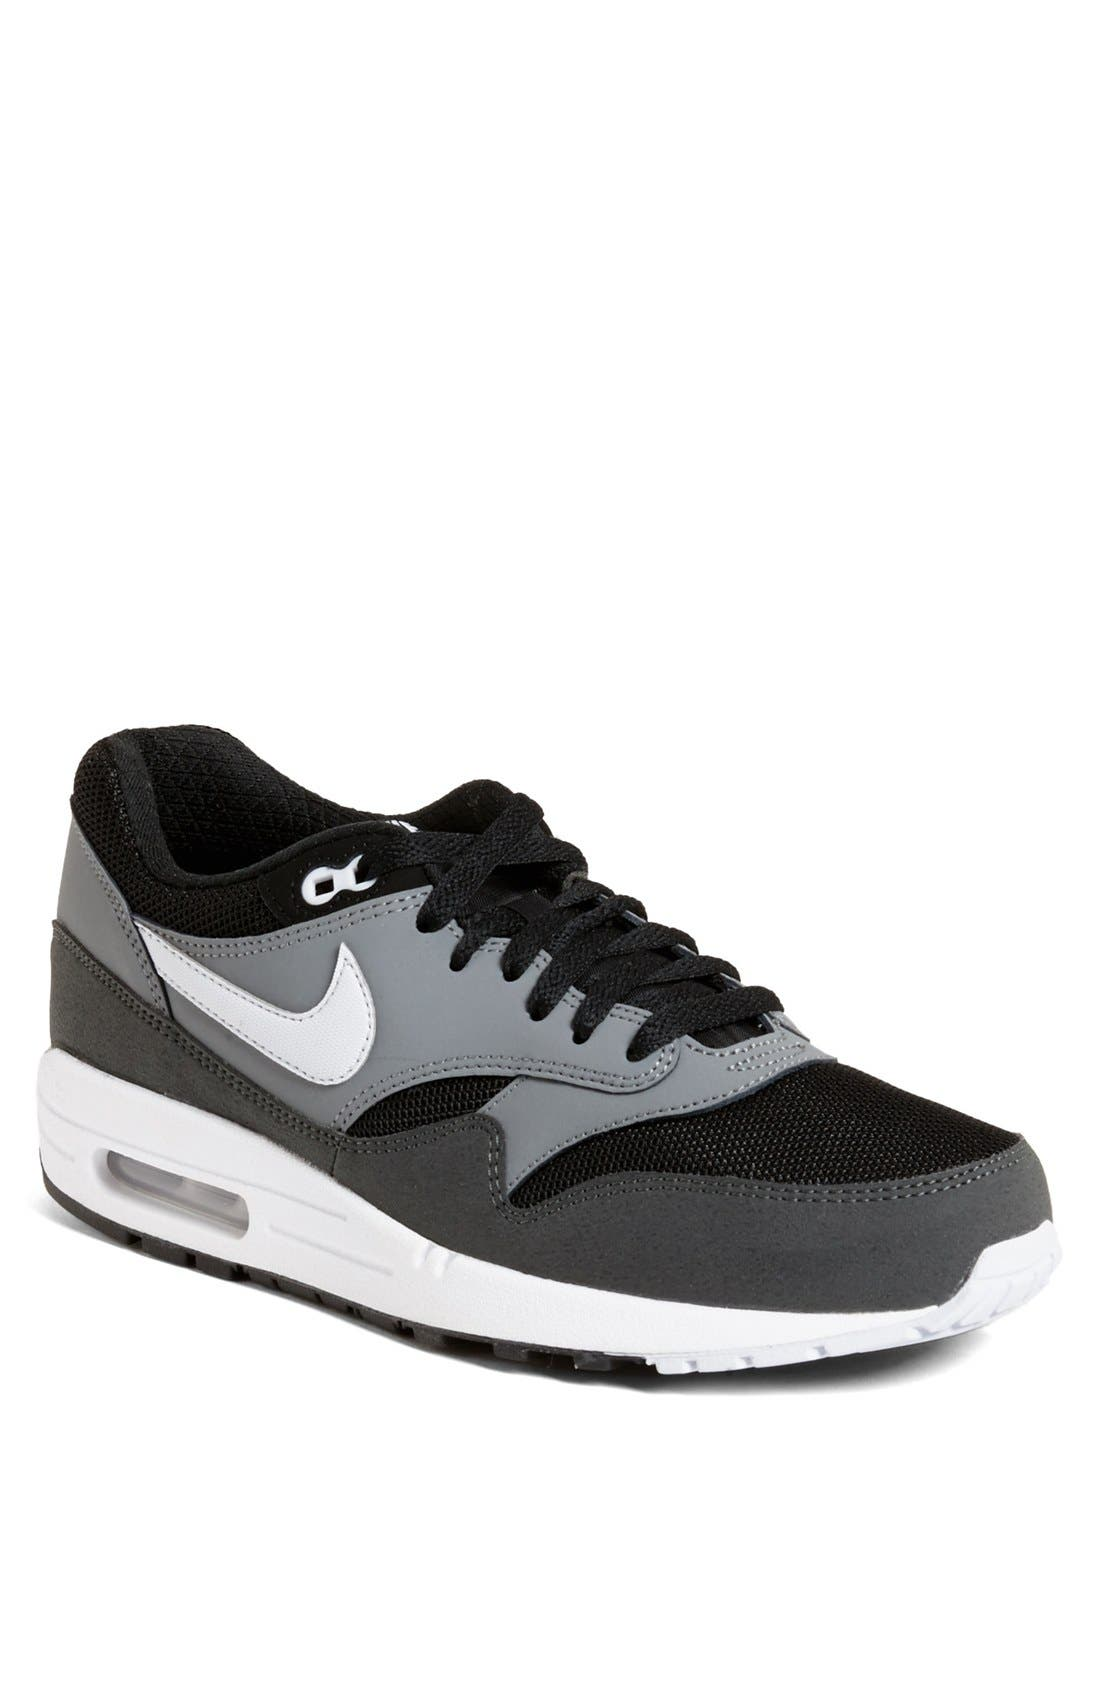 'Air Max 1 Essential' Sneaker, Main, color, 001